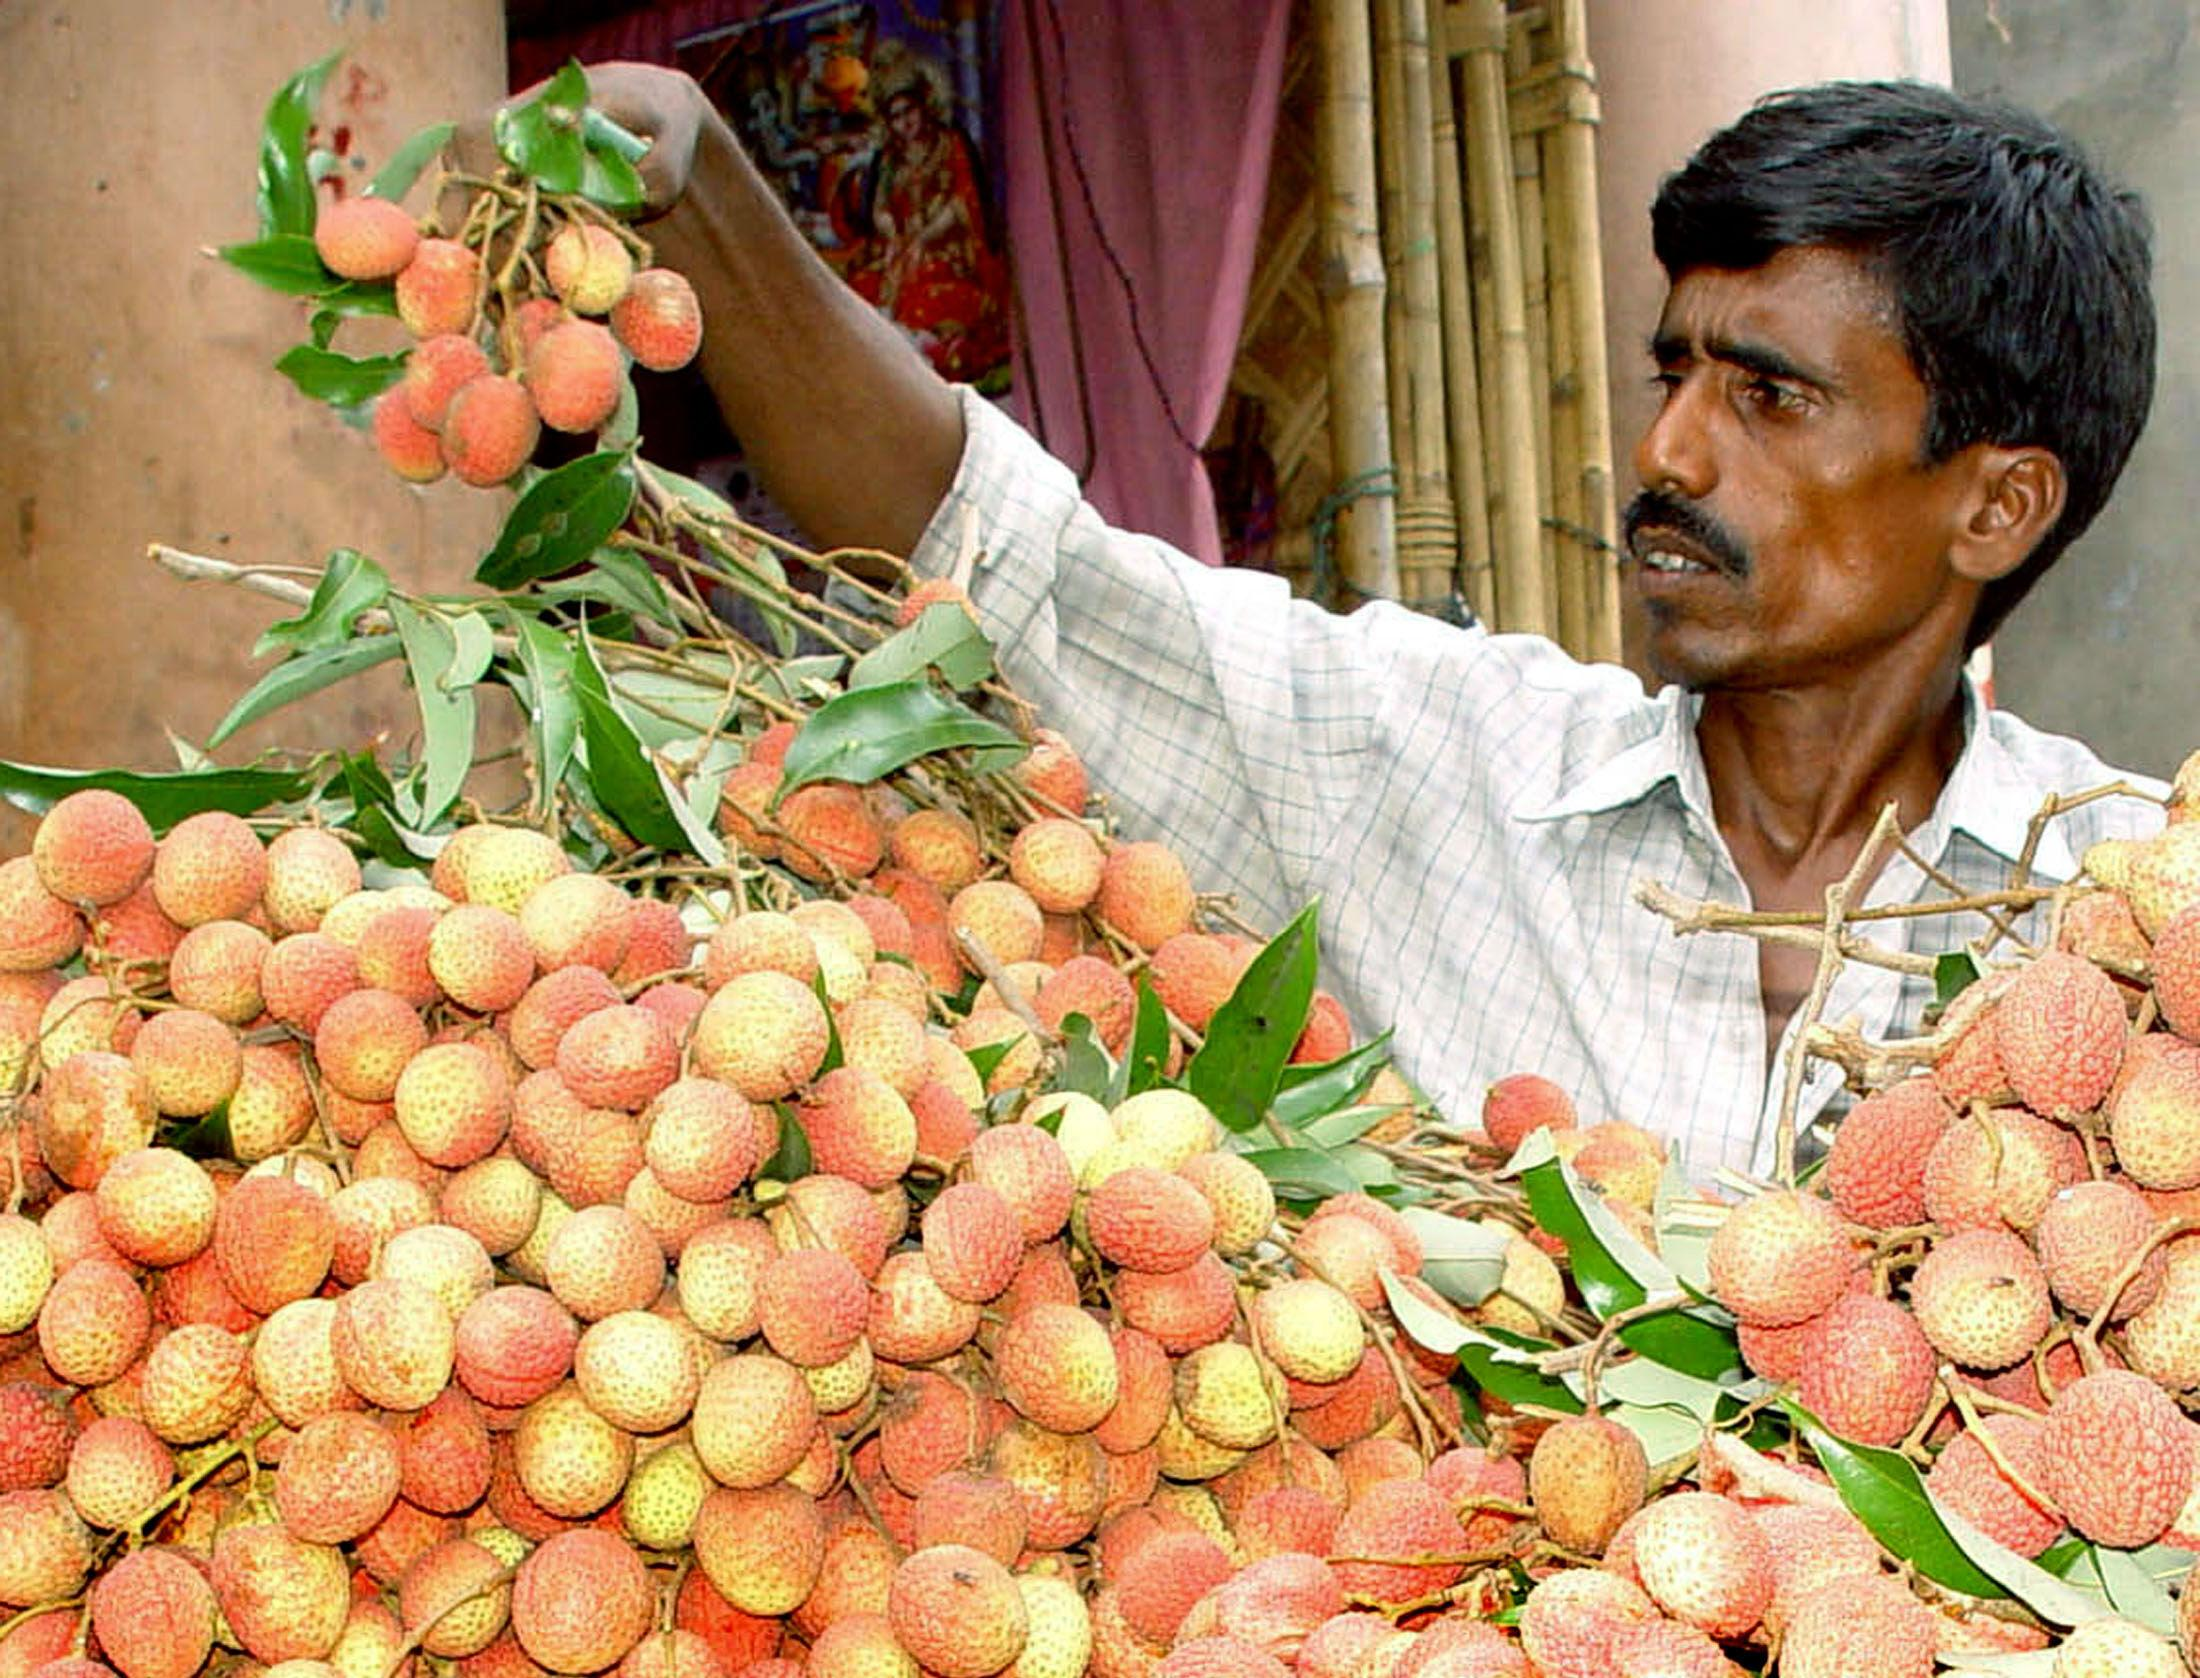 Litchi fruit suspected in mystery illness in India